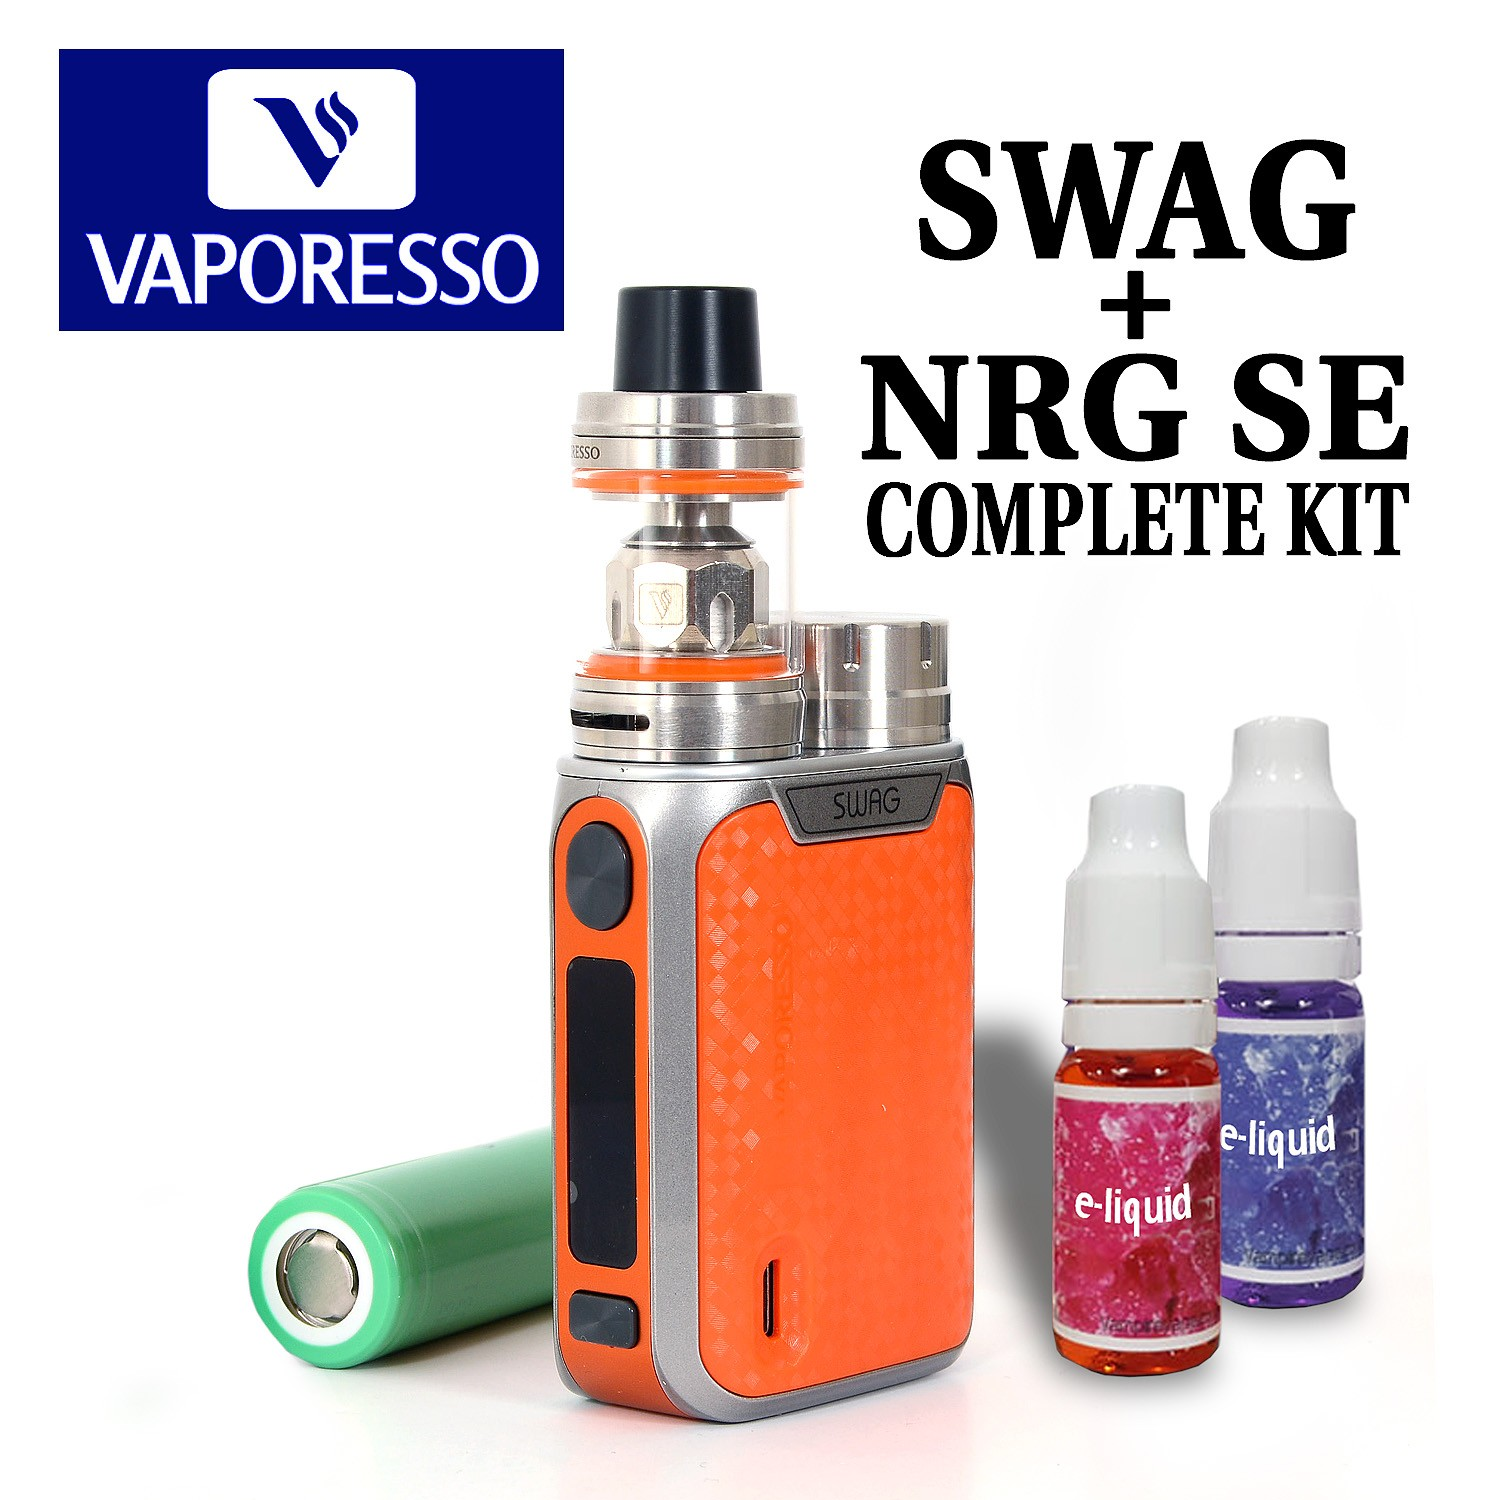 vaporesso swag 80w complete kit